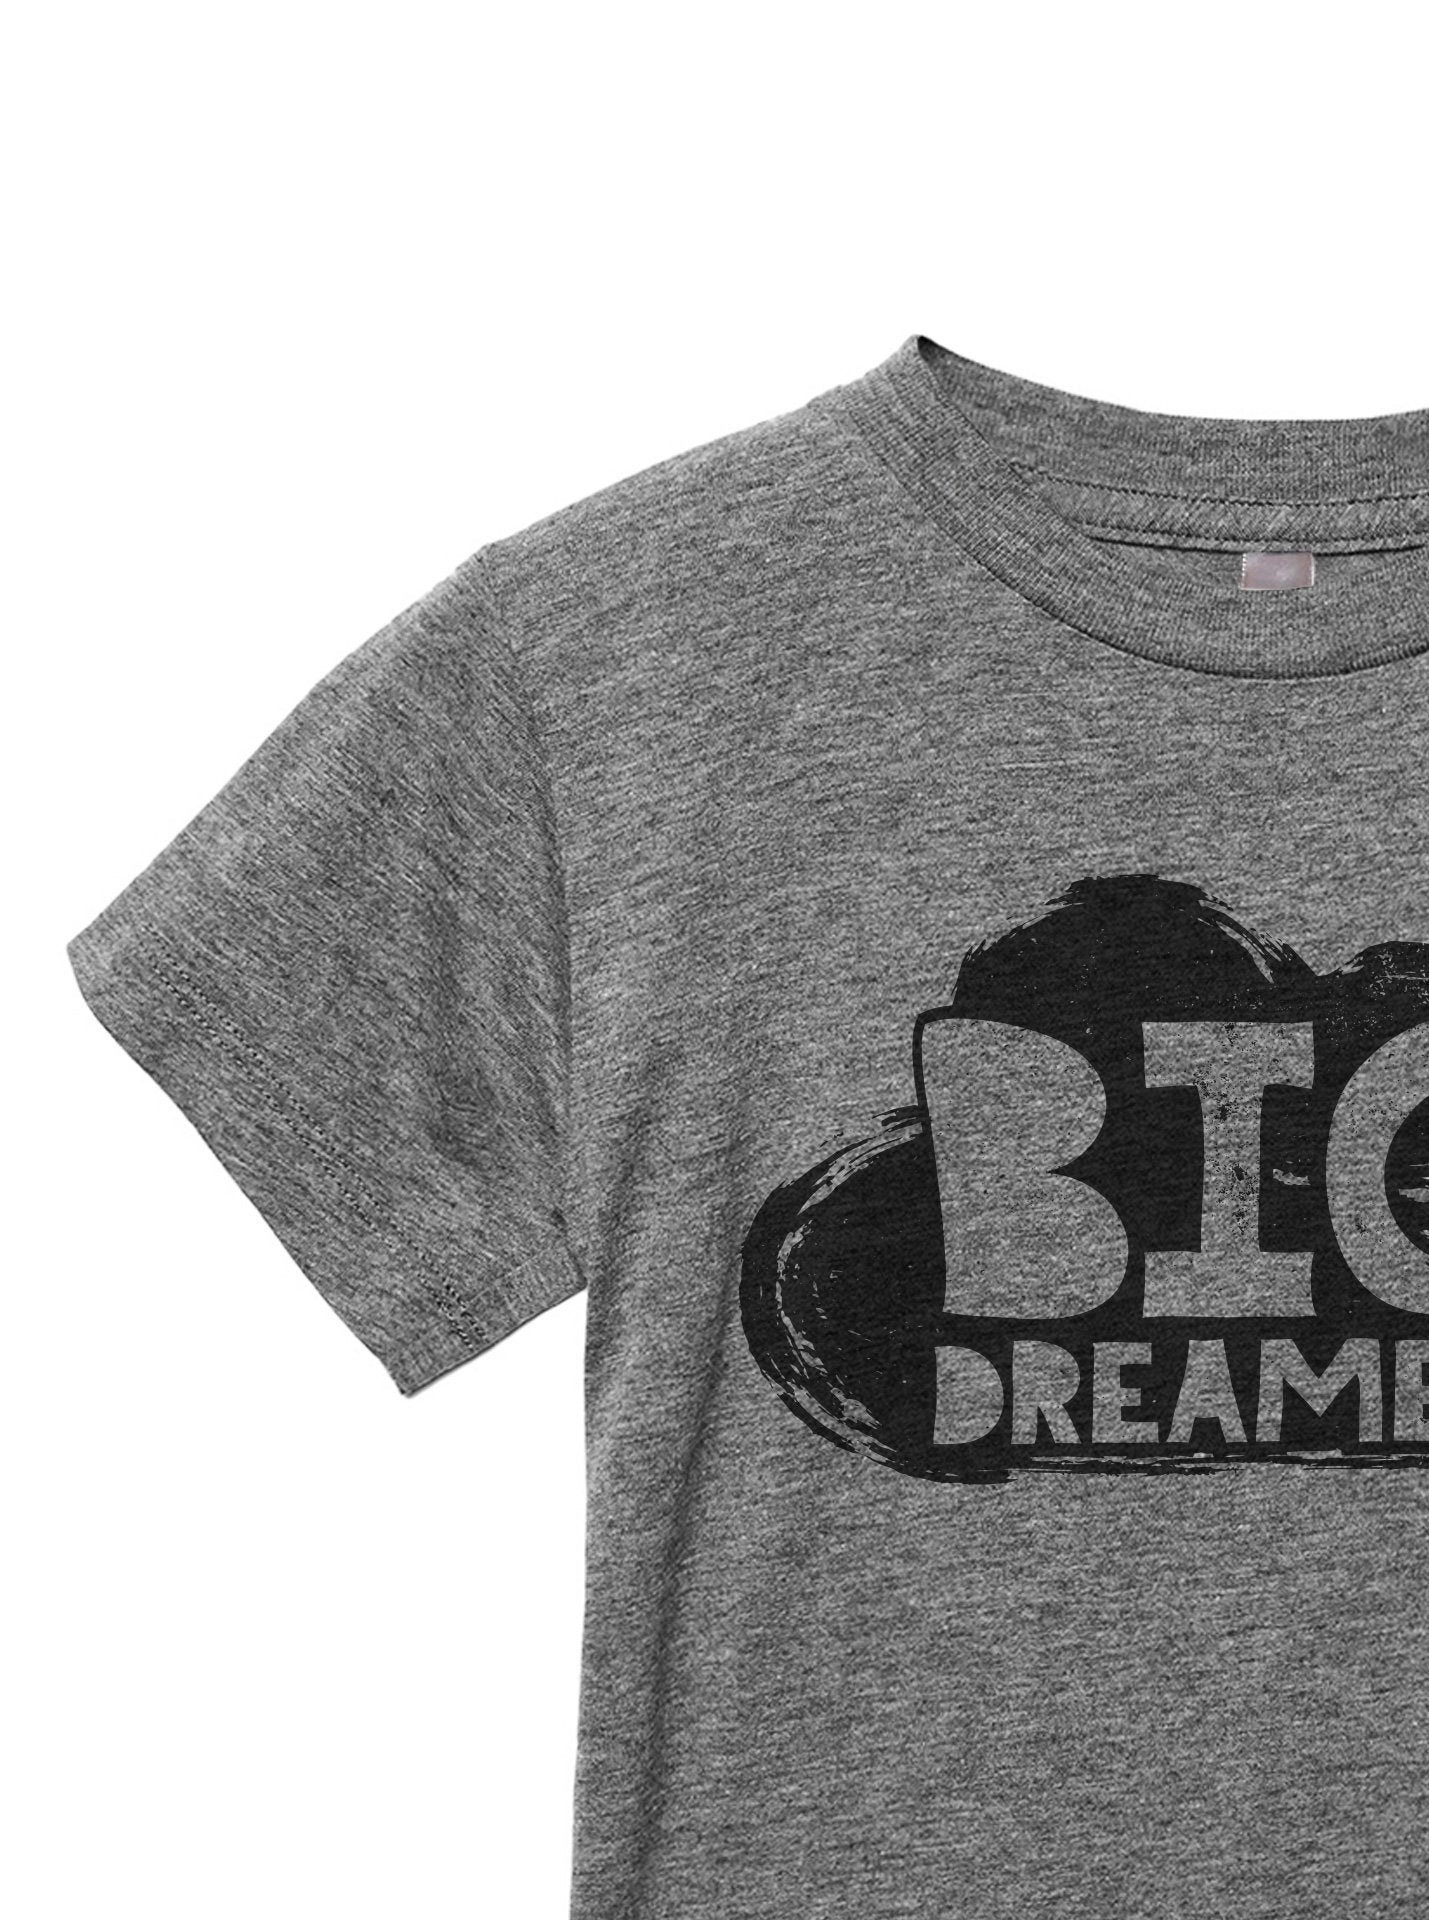 Big Dreamer Toddler's Go-To Crewneck Tee Heather Grey